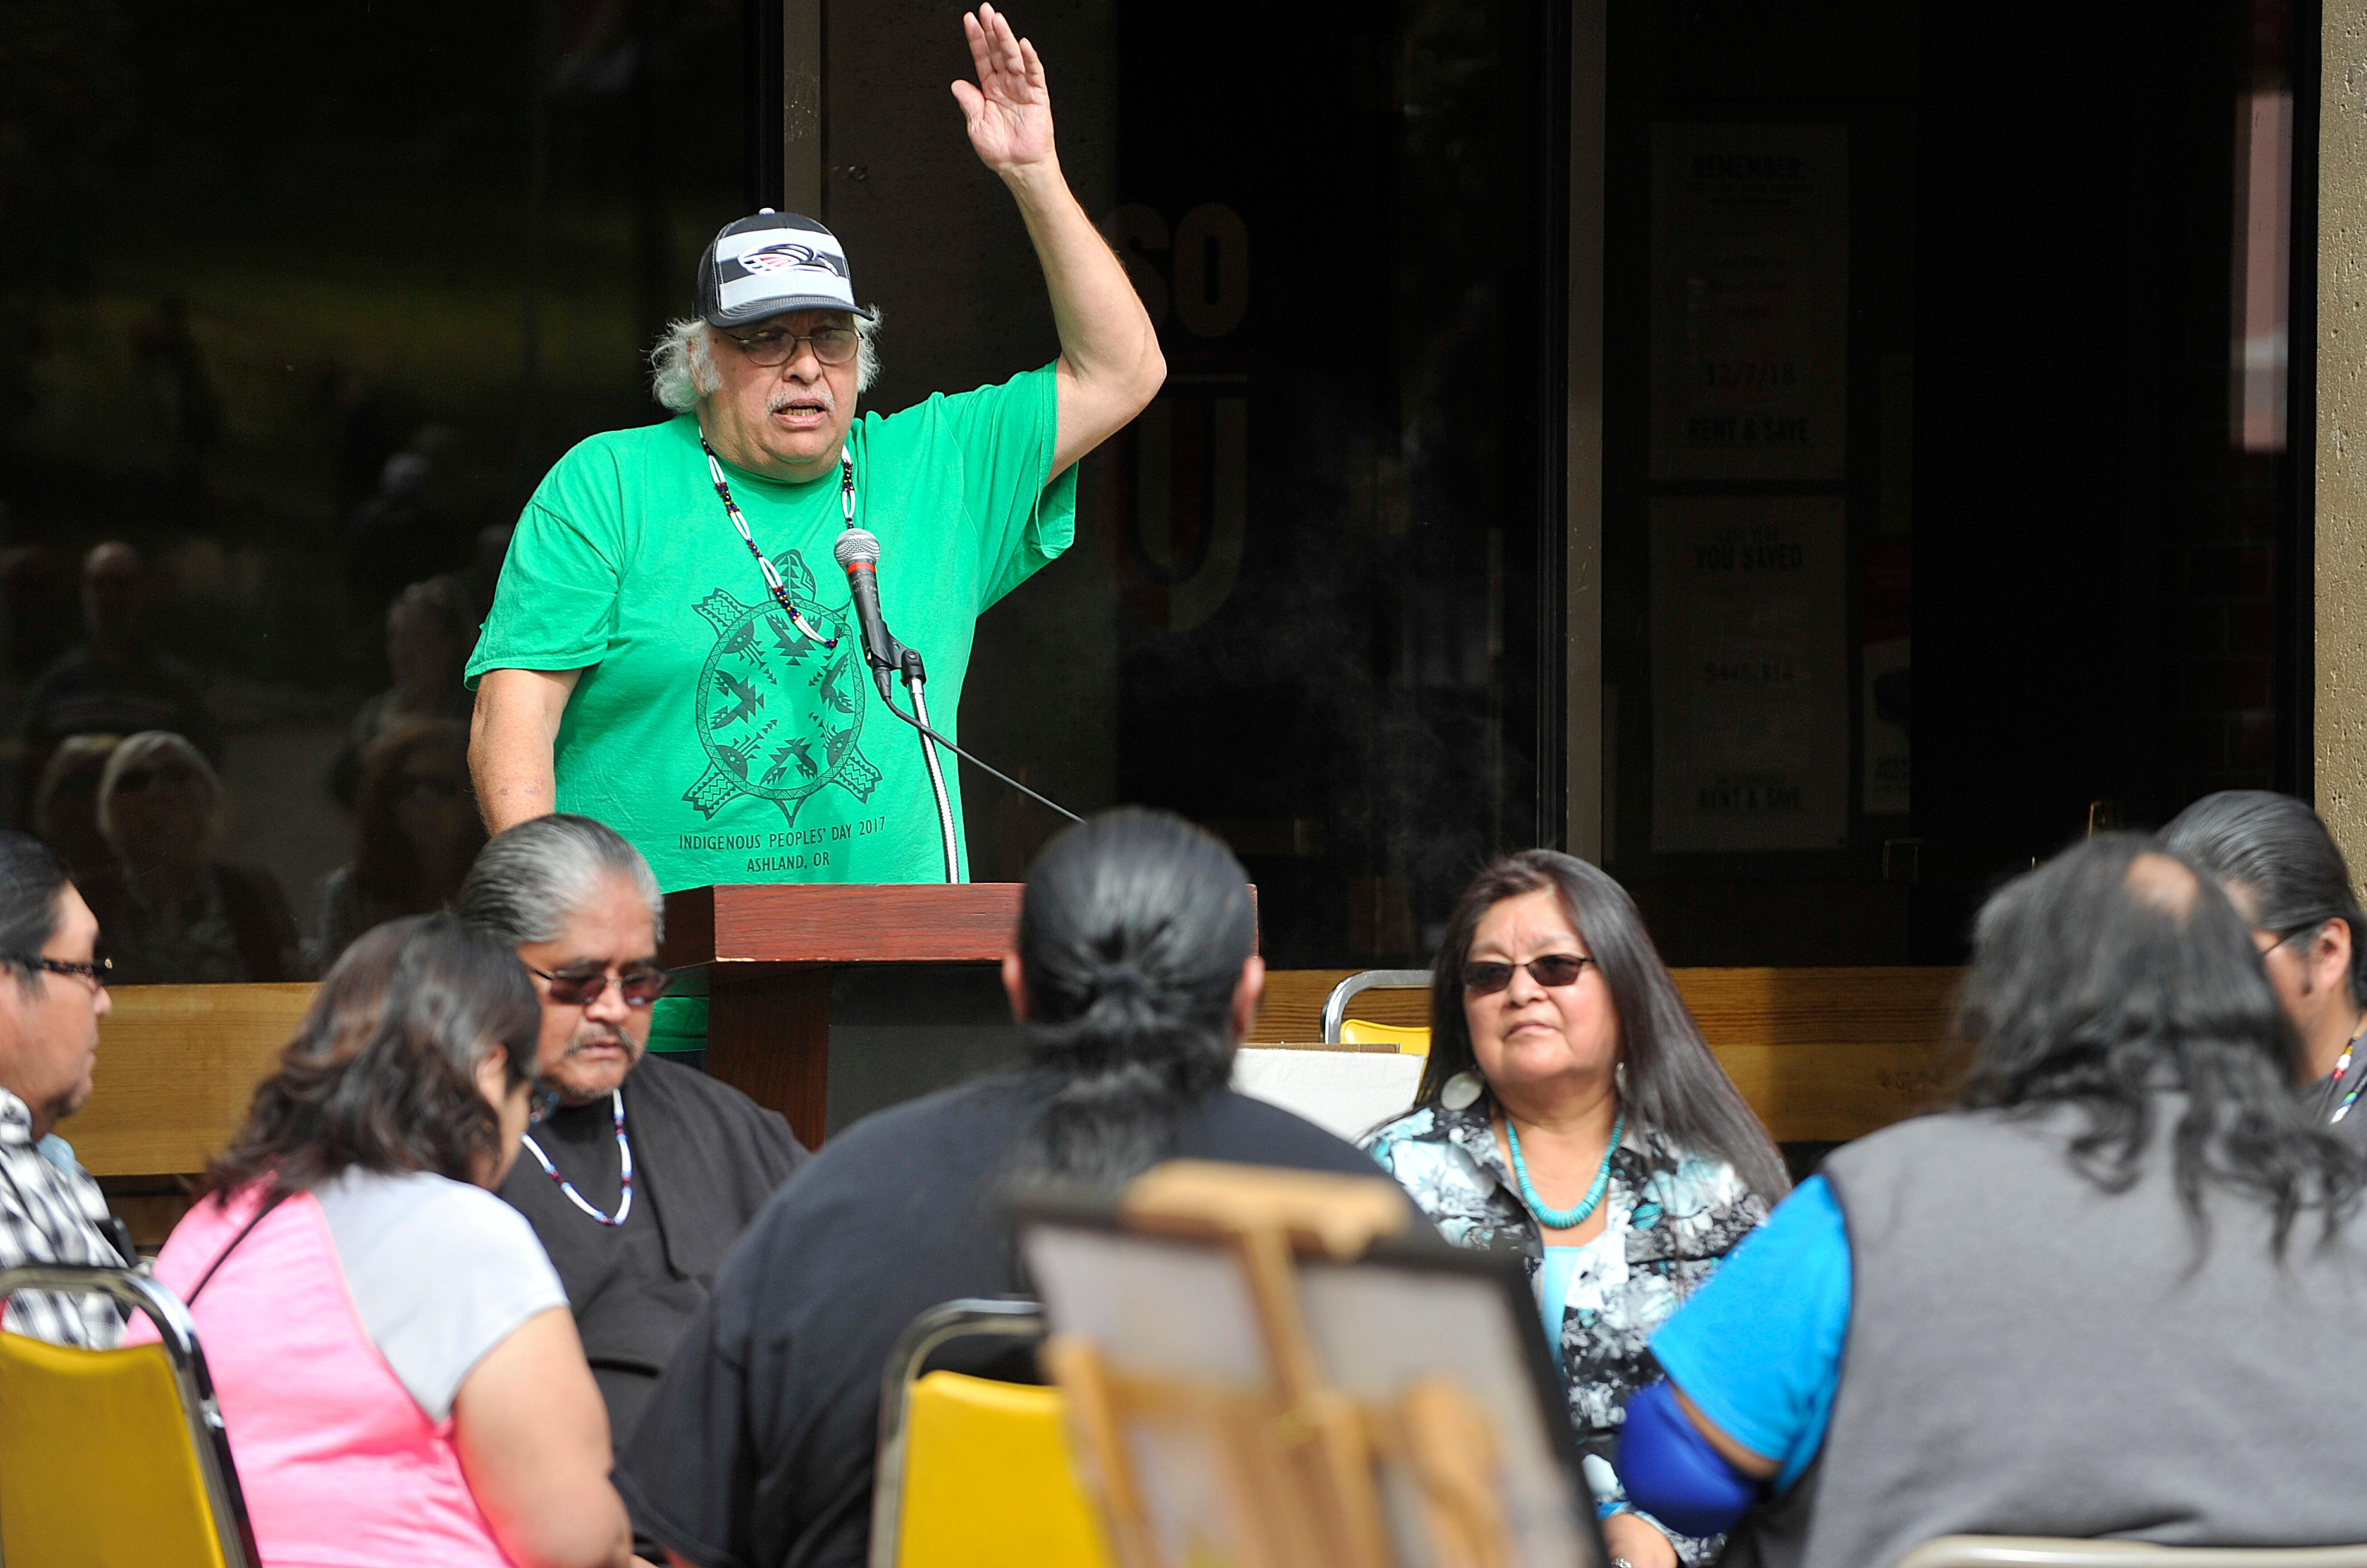 David West, Director Emeritus, speaks during the salmon bake event for Indigenous Peoples Day at Southern Oregon University. Daily Tidings / Jamie Lusch